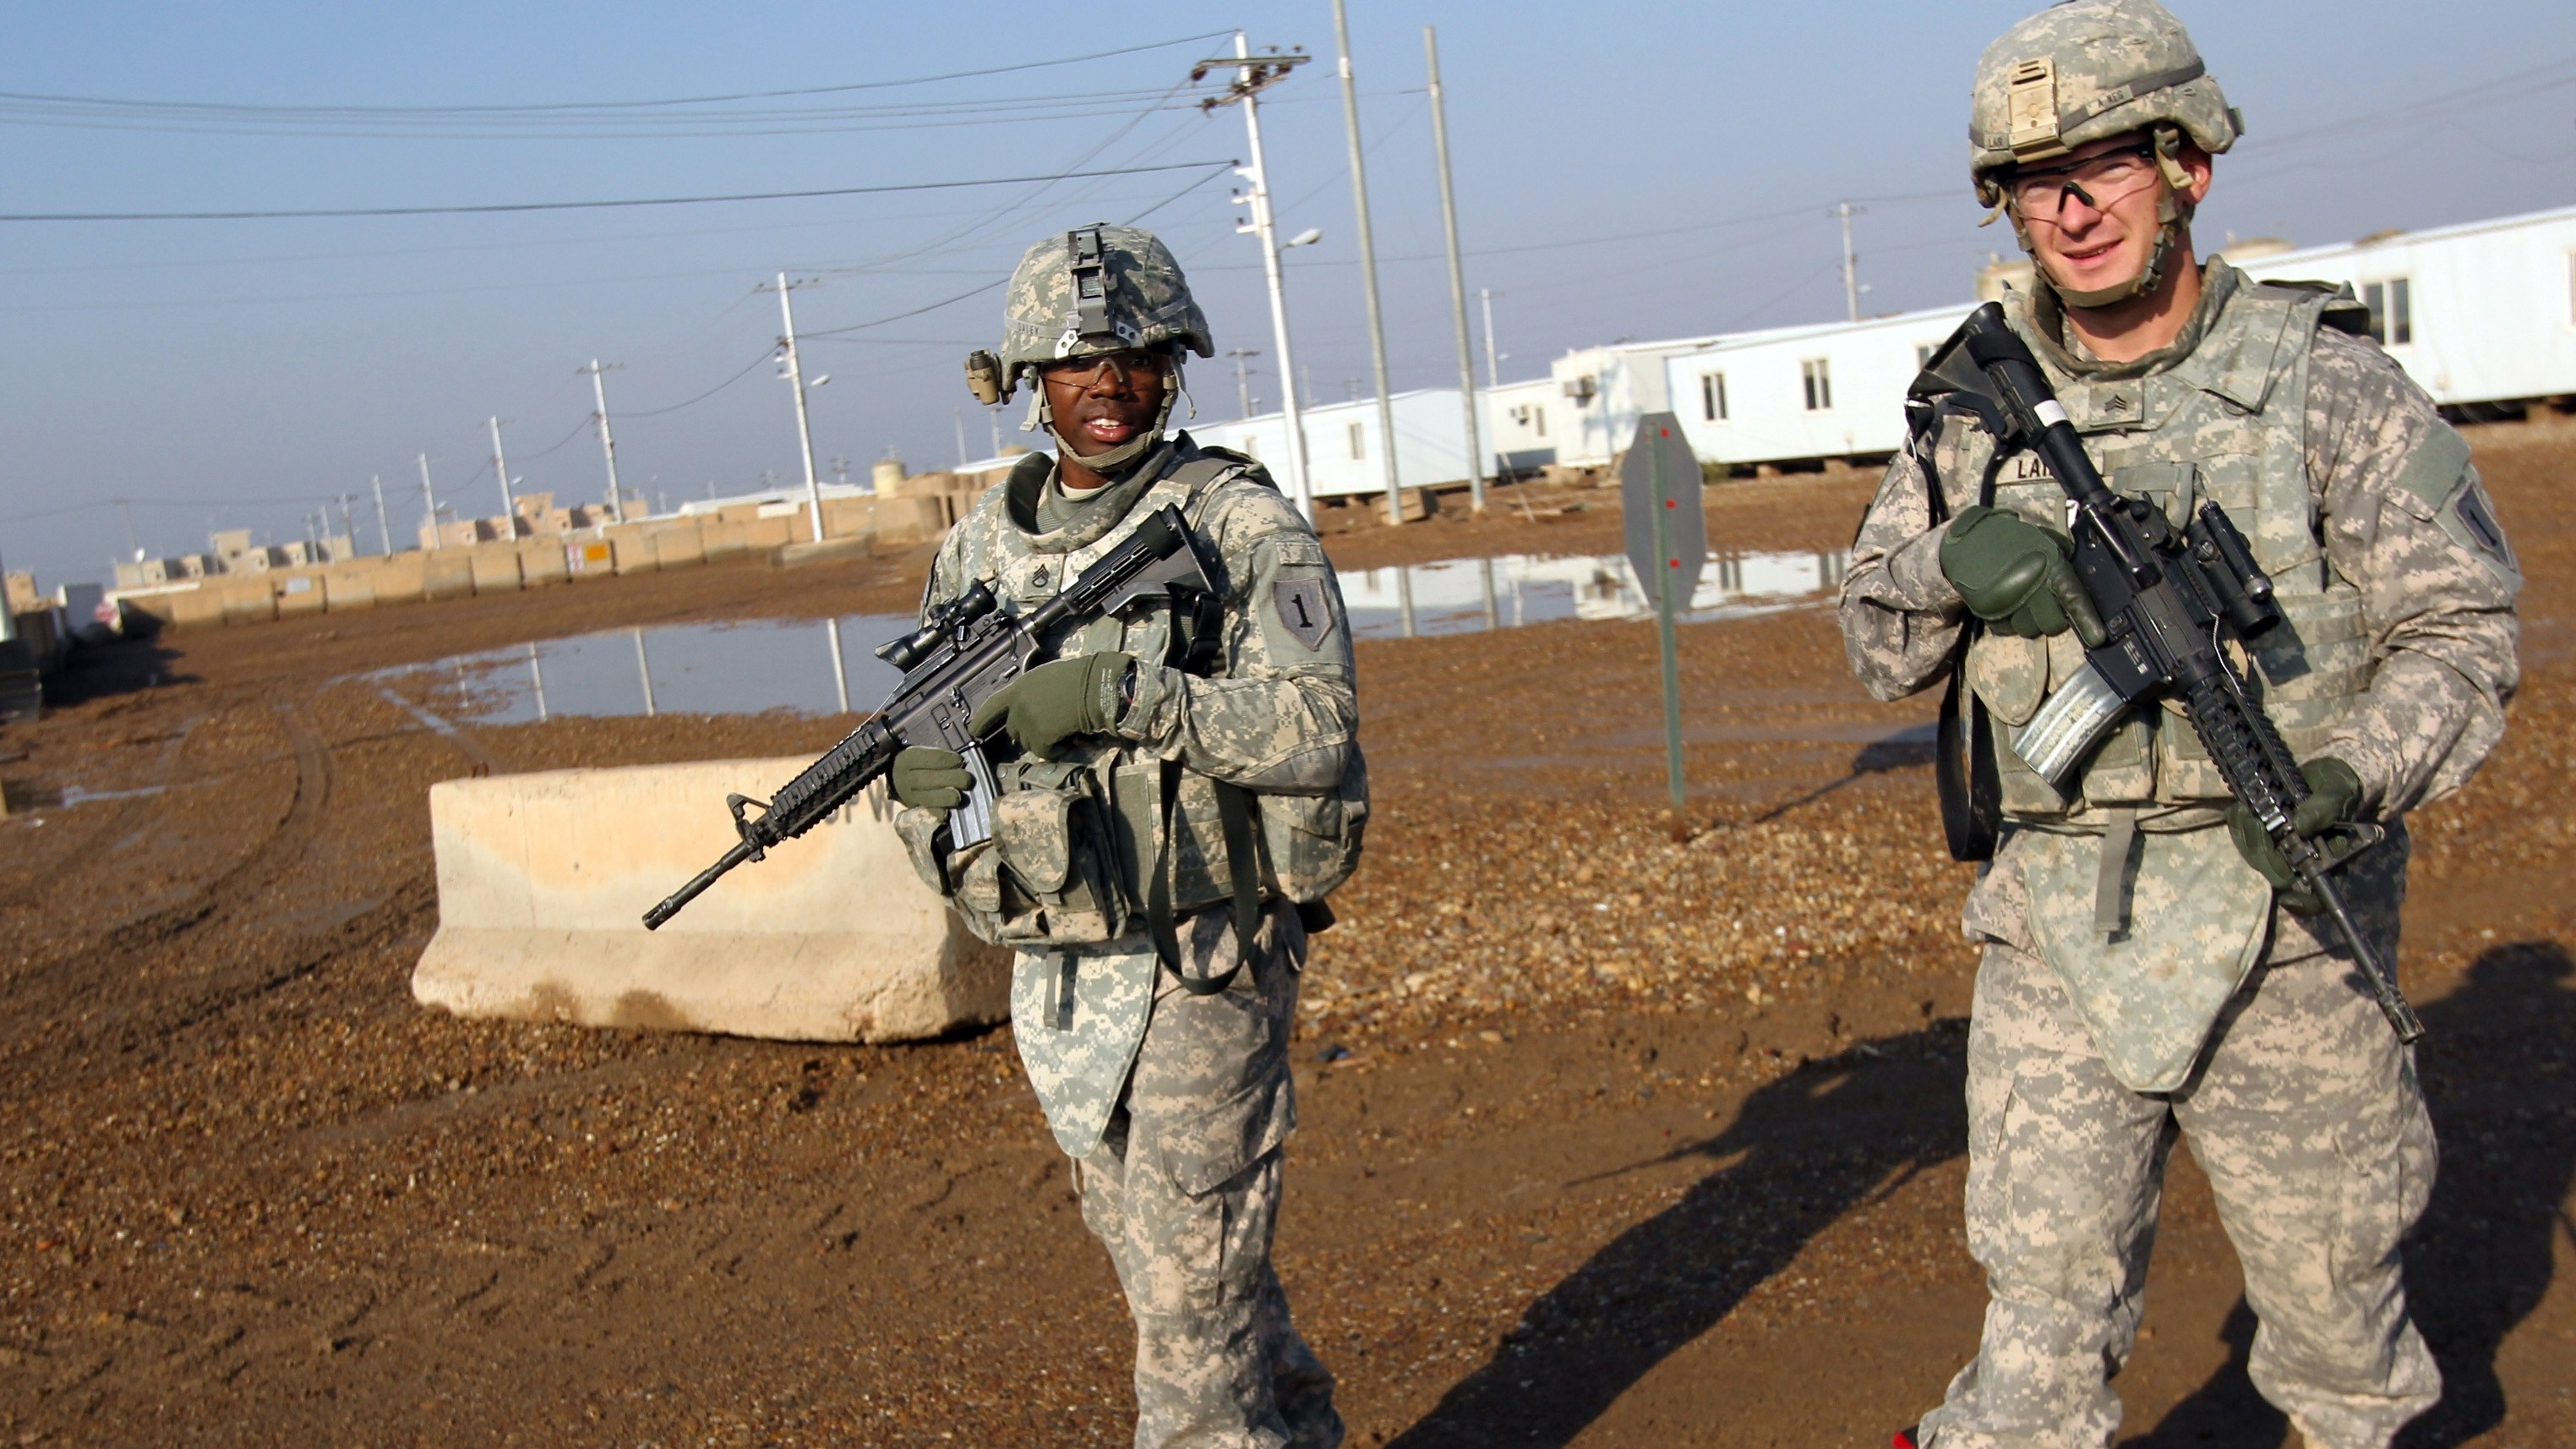 u s technology and iraq In the end, officials acknowledged, american arms, technology and intelligence helped iraq avert defeat and eventually grow, with much help from the soviet union later, into the regional power that invaded kuwait in august 1990, sparking the persian gulf war last year.